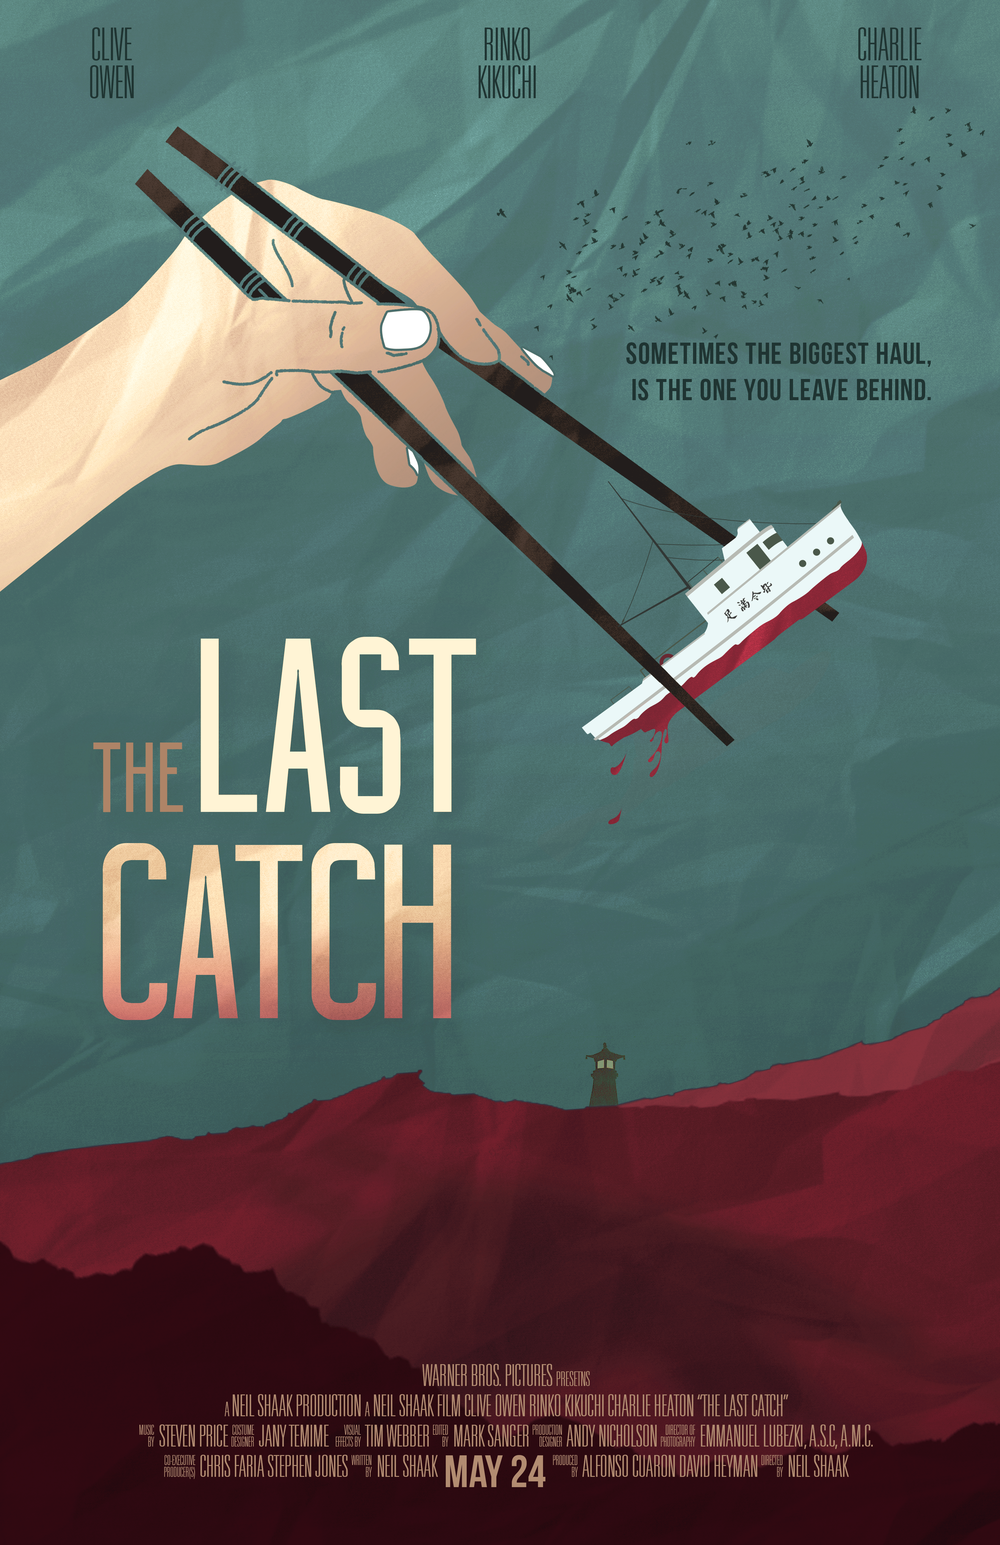 THE LAST CATCH - FILM CONCEPT & POSTER DESIGNOur oceans are dying. Climate change, pollution, and over fishing have pushed our seas to their brink. To combat the risk of losing what was once the world's greatest resource, several countries have joined together to form WARF— the World Alliance for the Restoration of Fisheries. This group, which is well funded and heavily armed, rule the seas with an iron fist to strictly enforce a world-wide ban on commercial fishing. After successfully keeping fish off the plates and out of the mouths of the masses for 15 years, legislation has been passed to allow commercial fishers to fish the seas once again. With the expected price of certain species to be worth several times their weight in gold, the chance of landing a large fortune is too alluring for certain elements to pass up. When a majority of the crews are backed by criminal organizations, the fishermen know what's at stake and are willing to do whatever it takes to satisfy their investors and make sure this next catch the last they'll ever need.